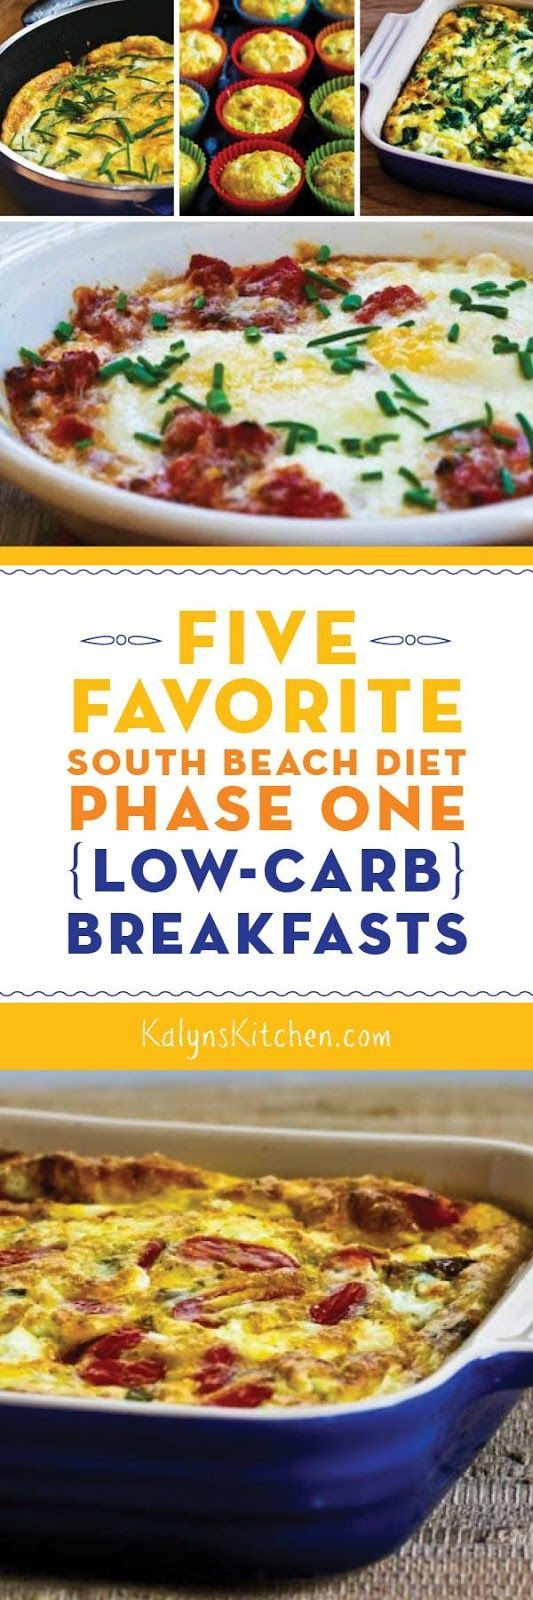 Five Favorite South Beach Diet Phase One (Low-Carb) Breakfasts; all these favorite breakfasts are also gluten-free. [found on KalynsKitchen.com]